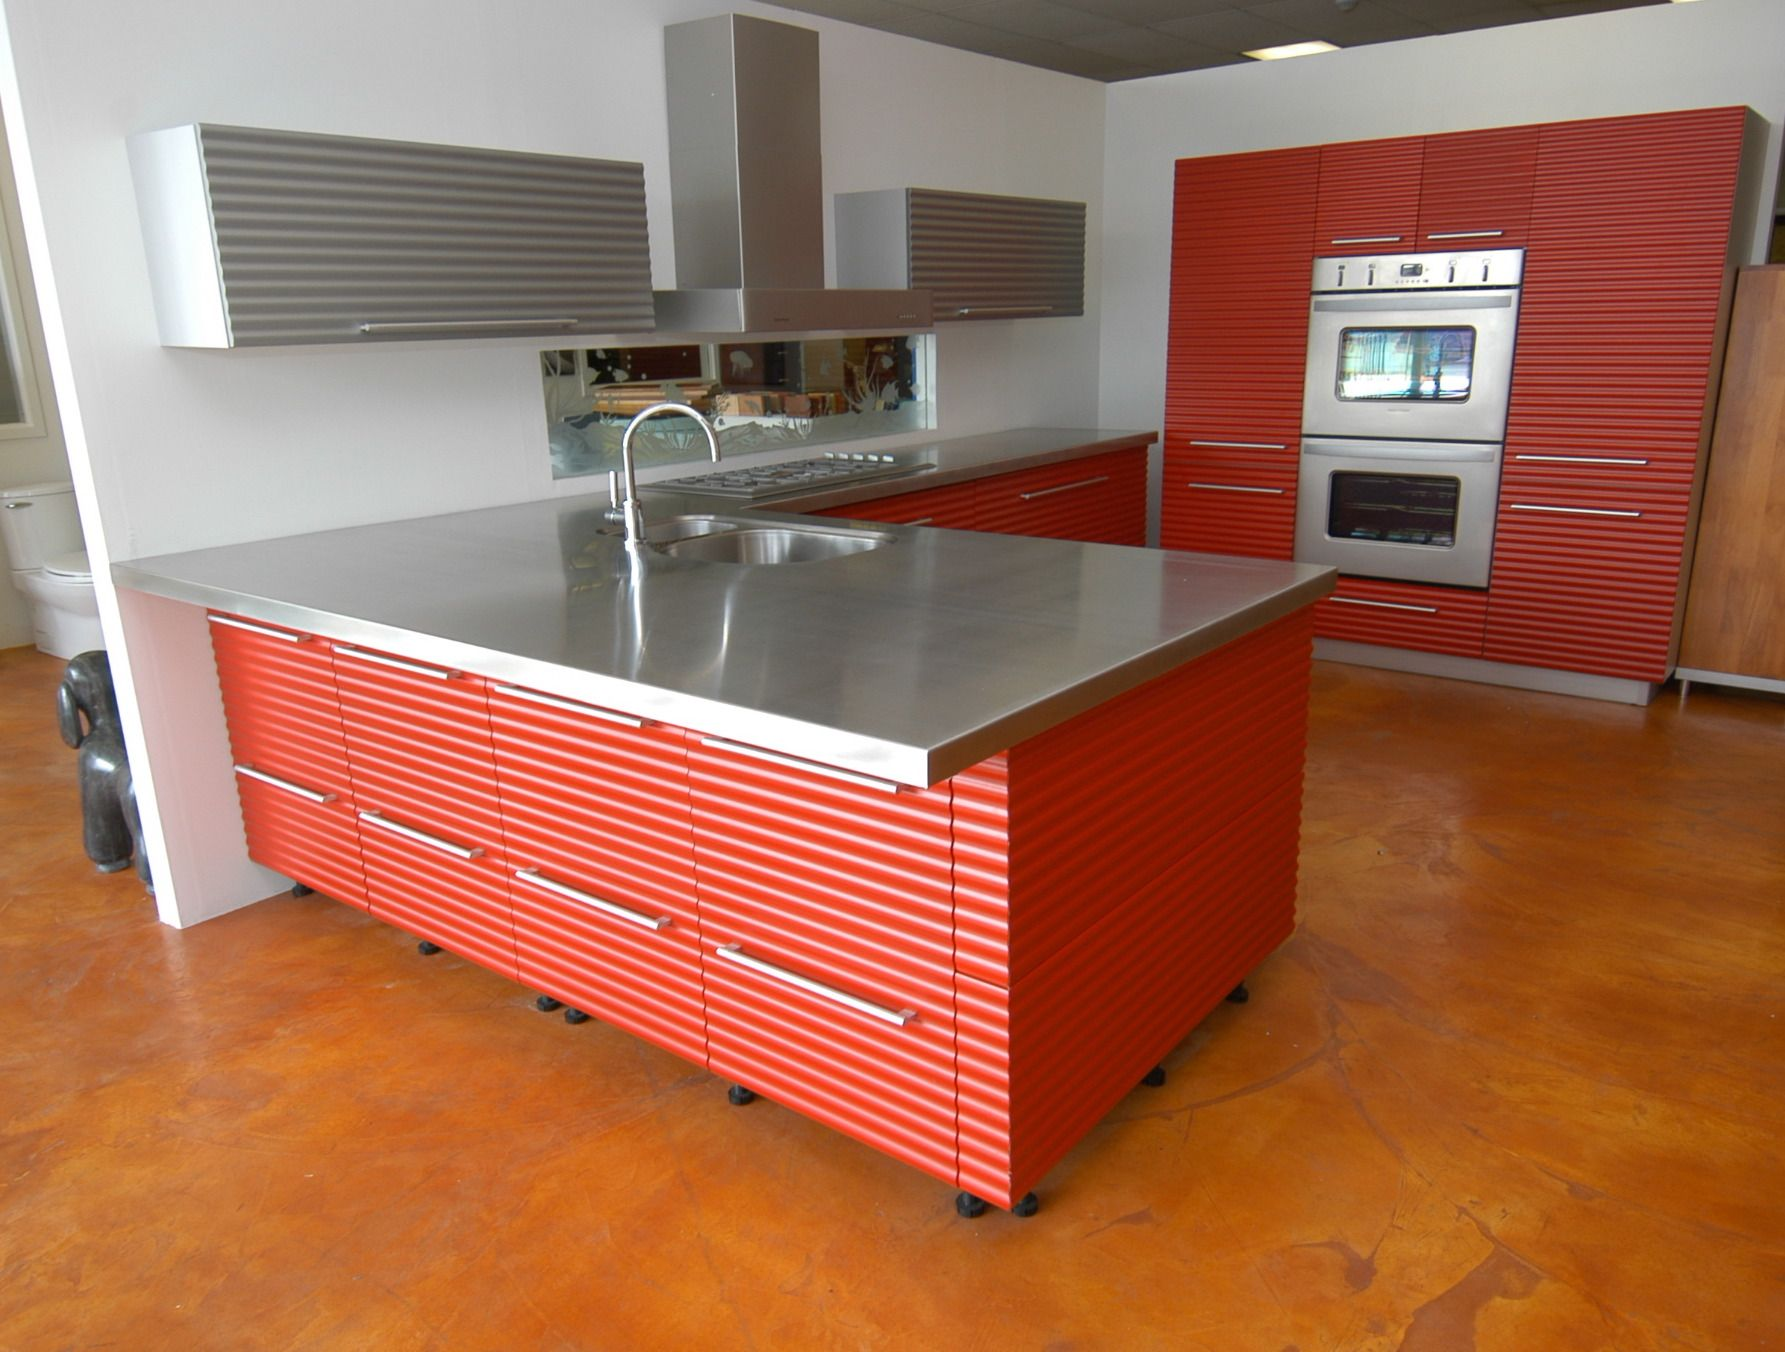 Stainless Steel Countertop With Integrated Sink Easy Clean All It Needs Is A Waste Hole And A Be Cost Of Kitchen Countertops Countertops Kitchen Countertops